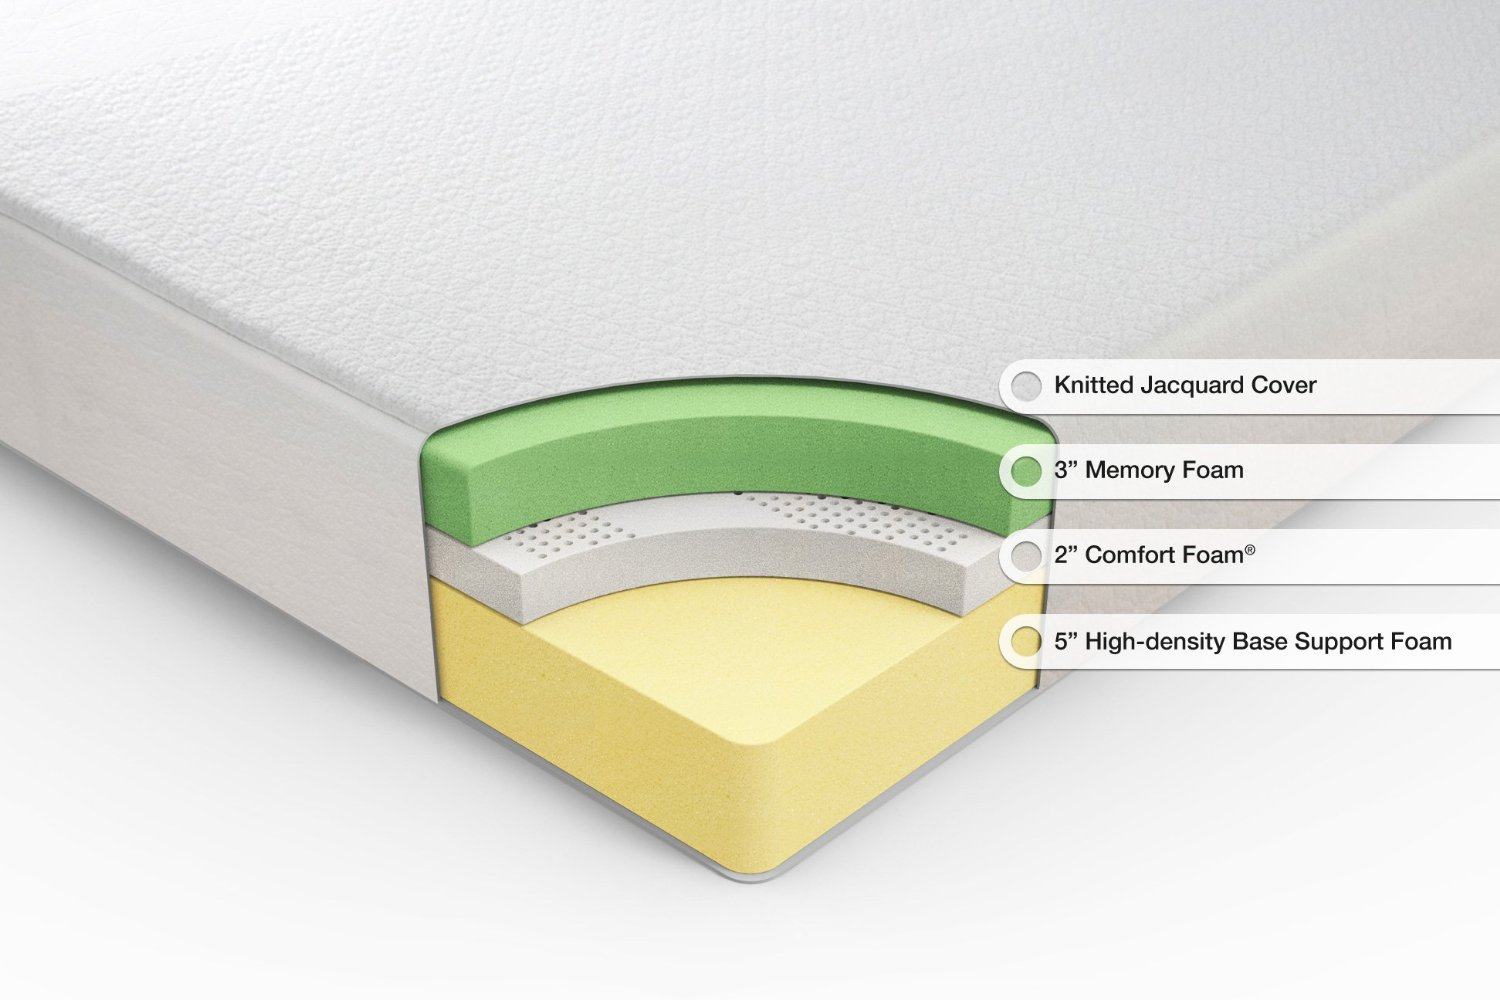 Sleep Master Ultima Comfort Memory Foam Review